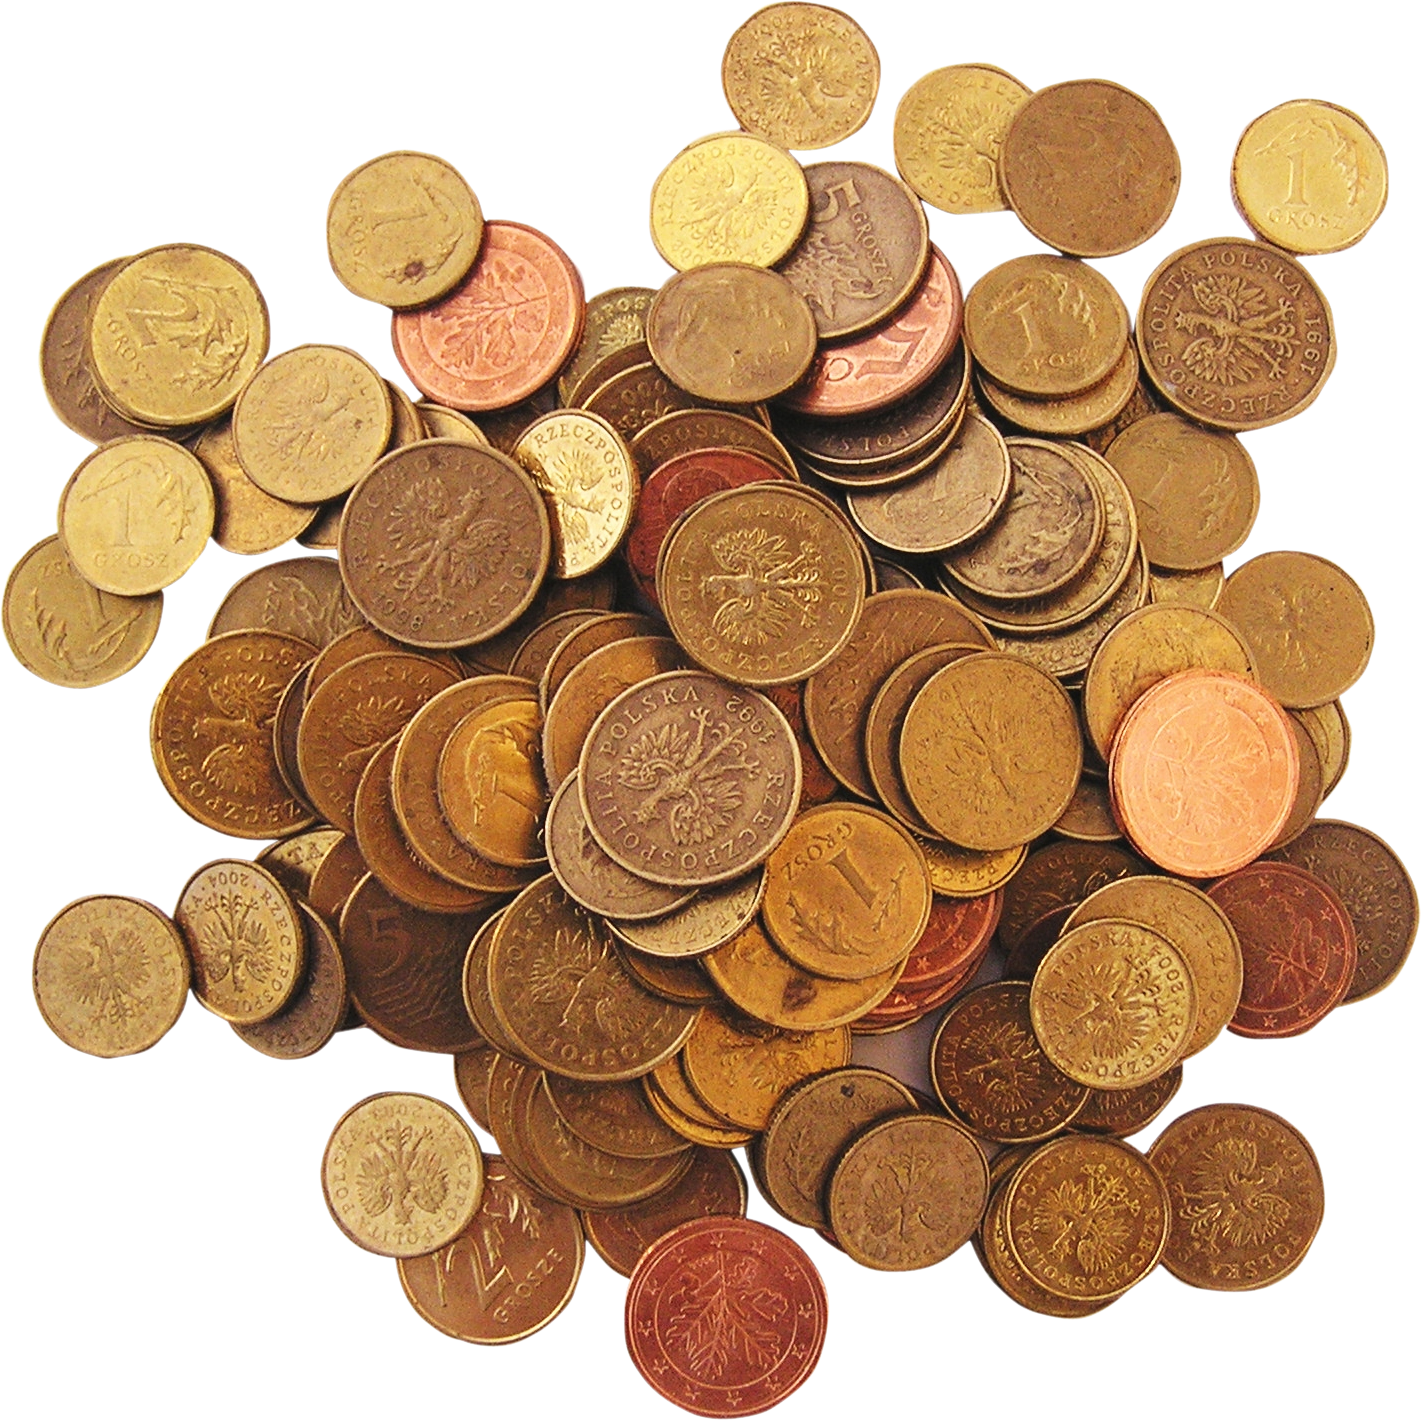 Change coins png. Gold coin image purepng